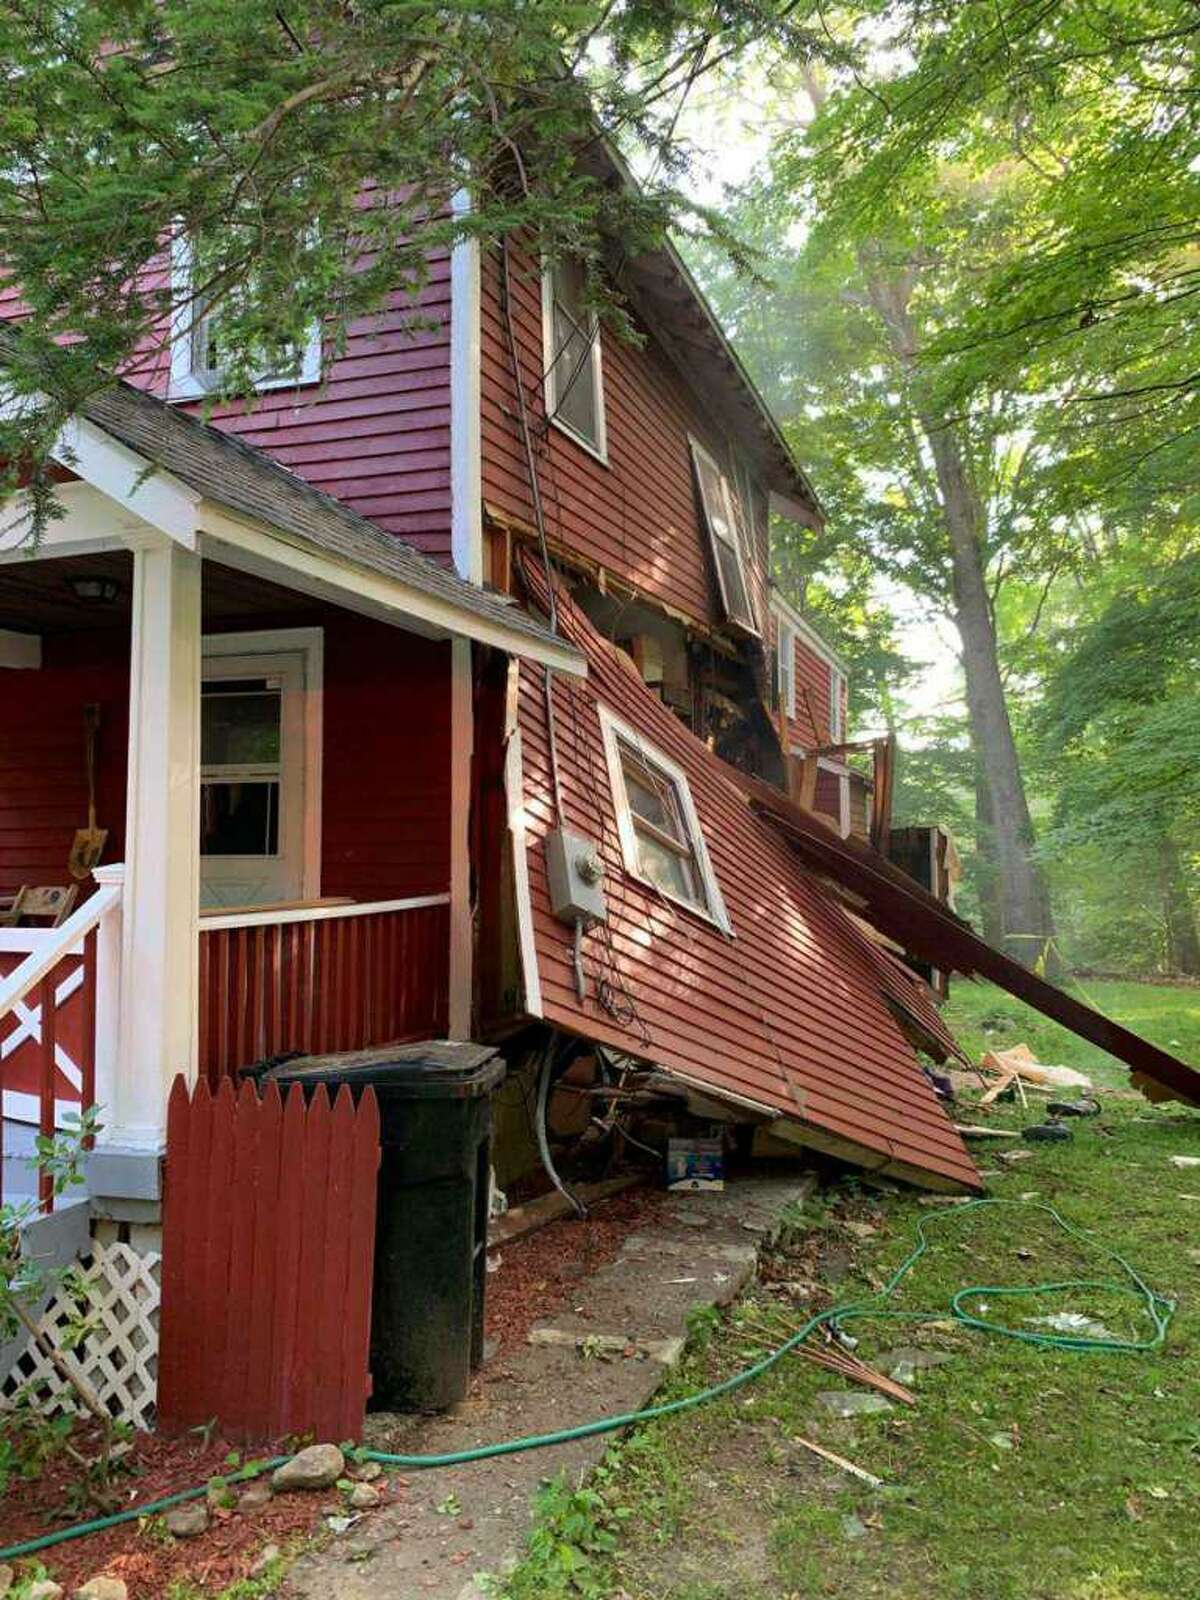 Firefighters say a propane leak caused because a homeowner was changing out a stove caused a huge explosion Saturday morning in North Stamford.